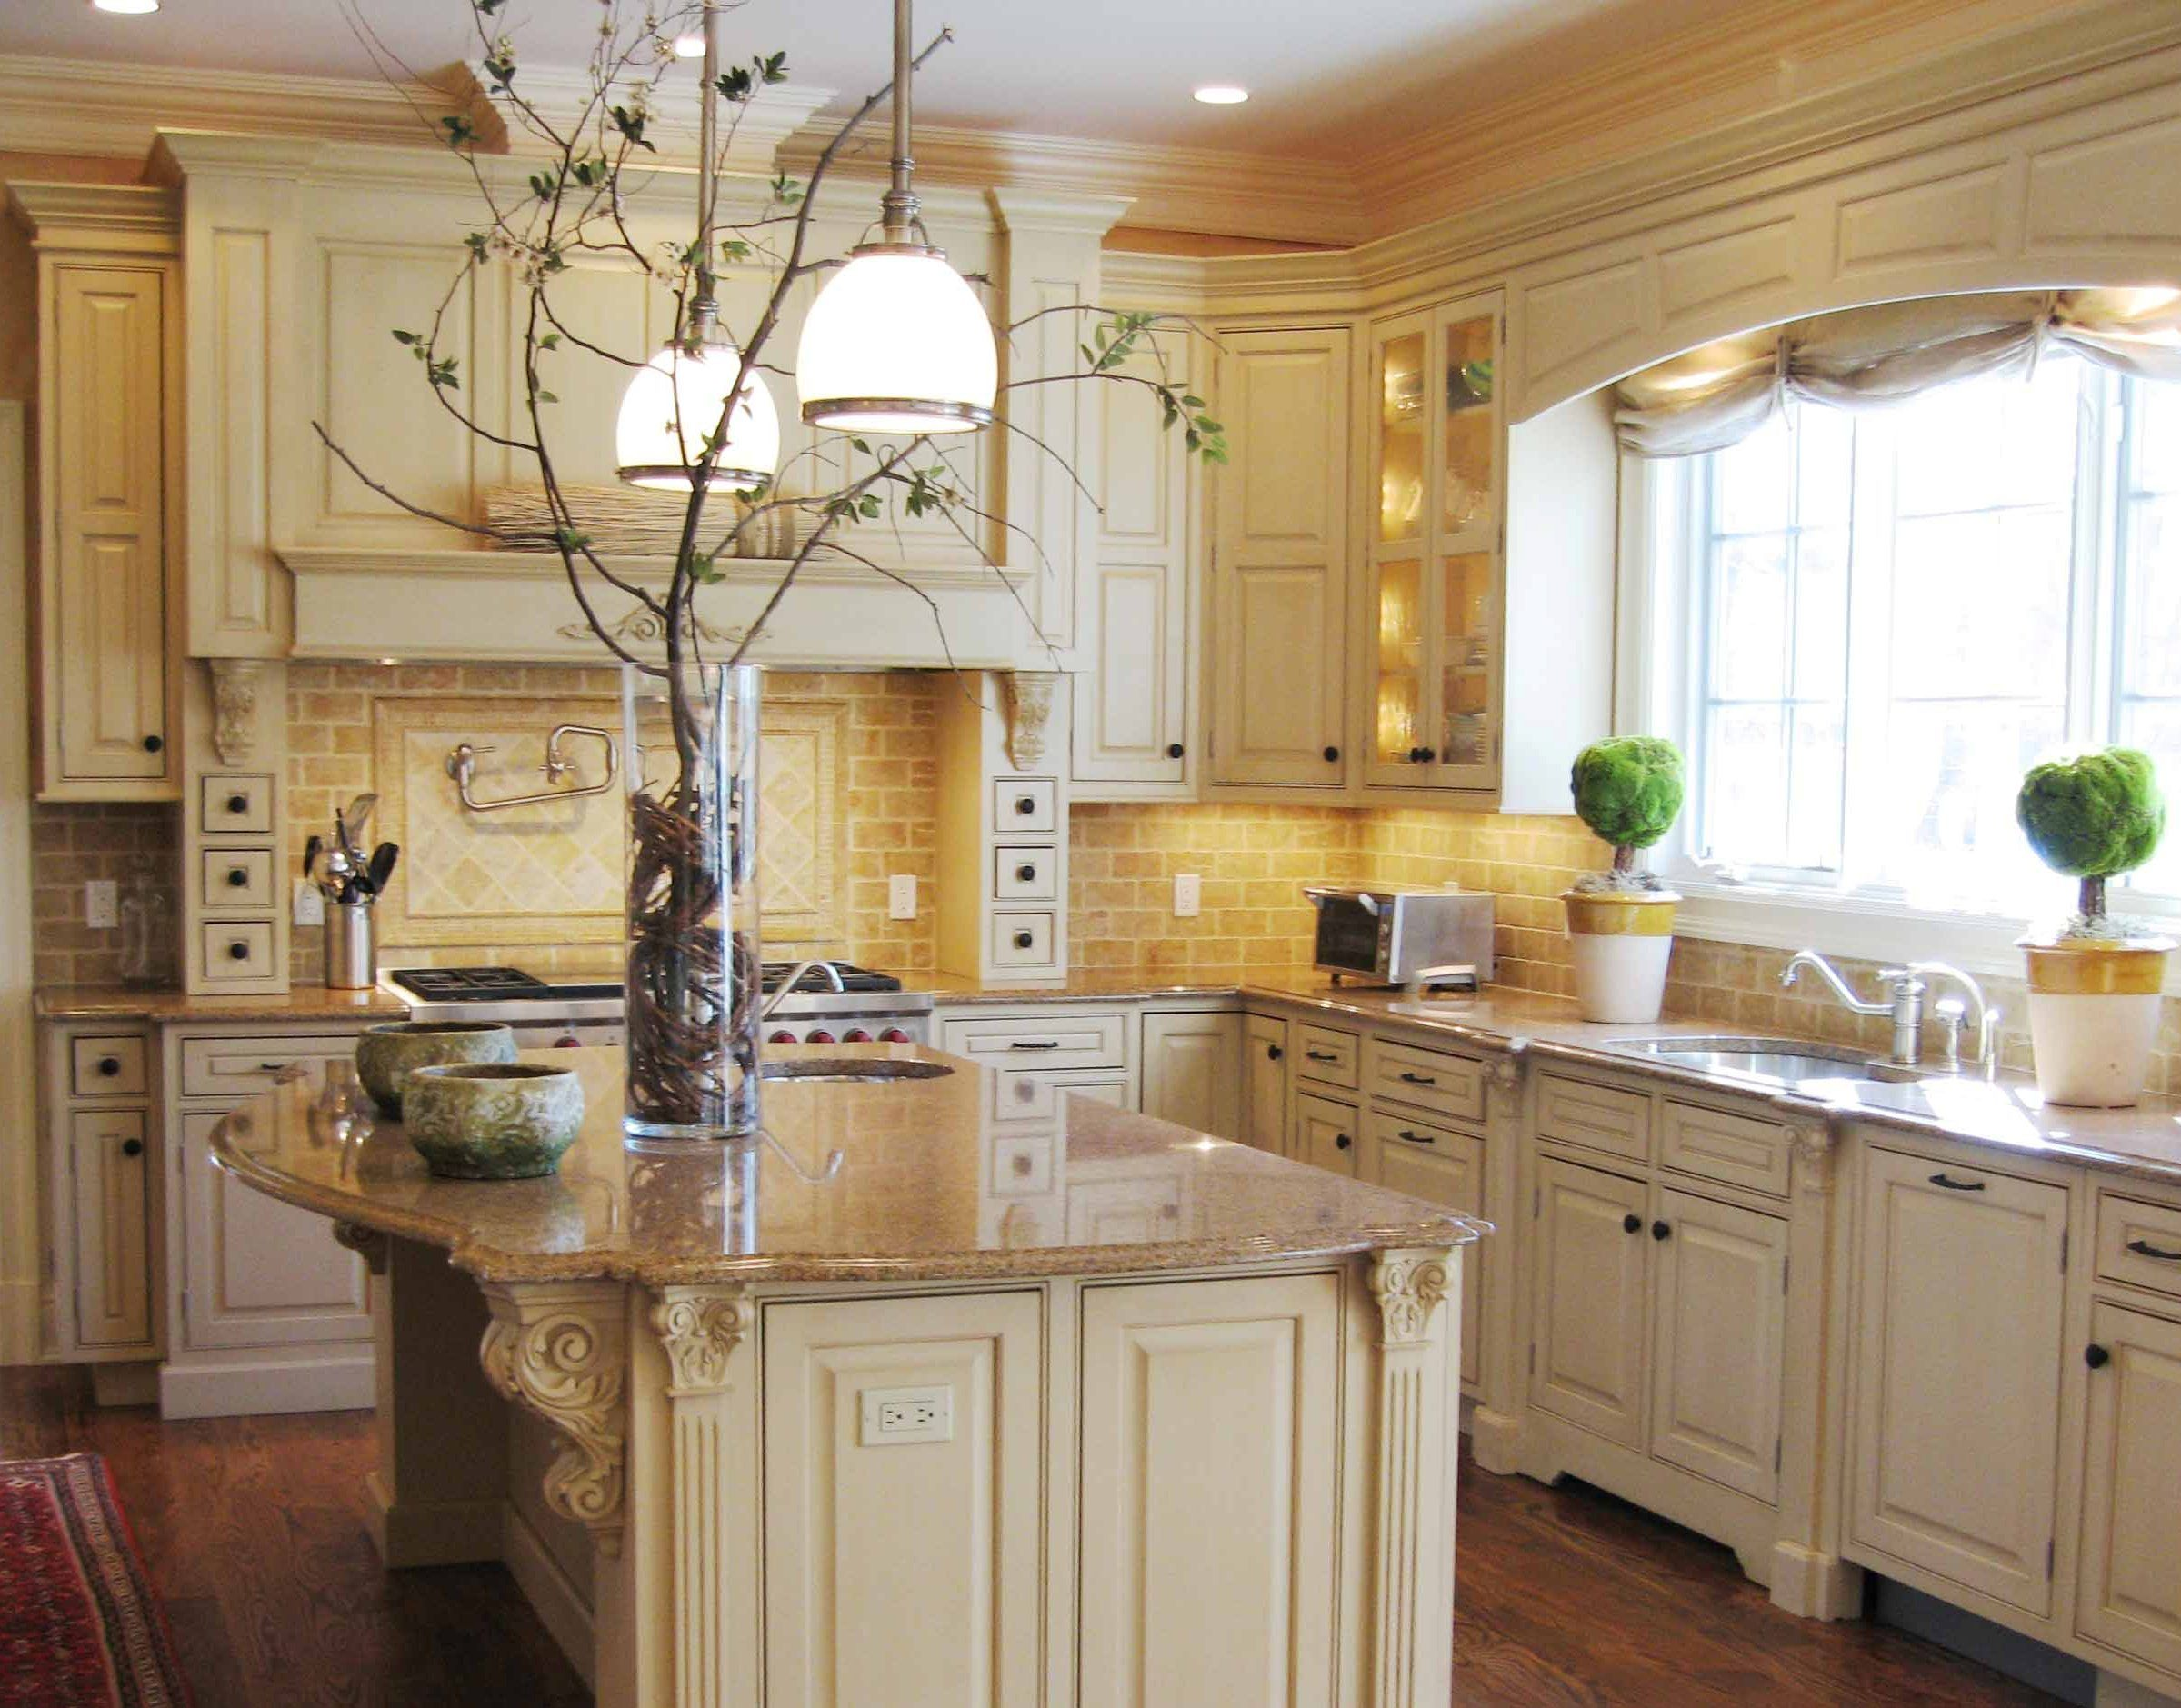 Tuscan kitchen design style highly features earthy paint for Earthy kitchen ideas